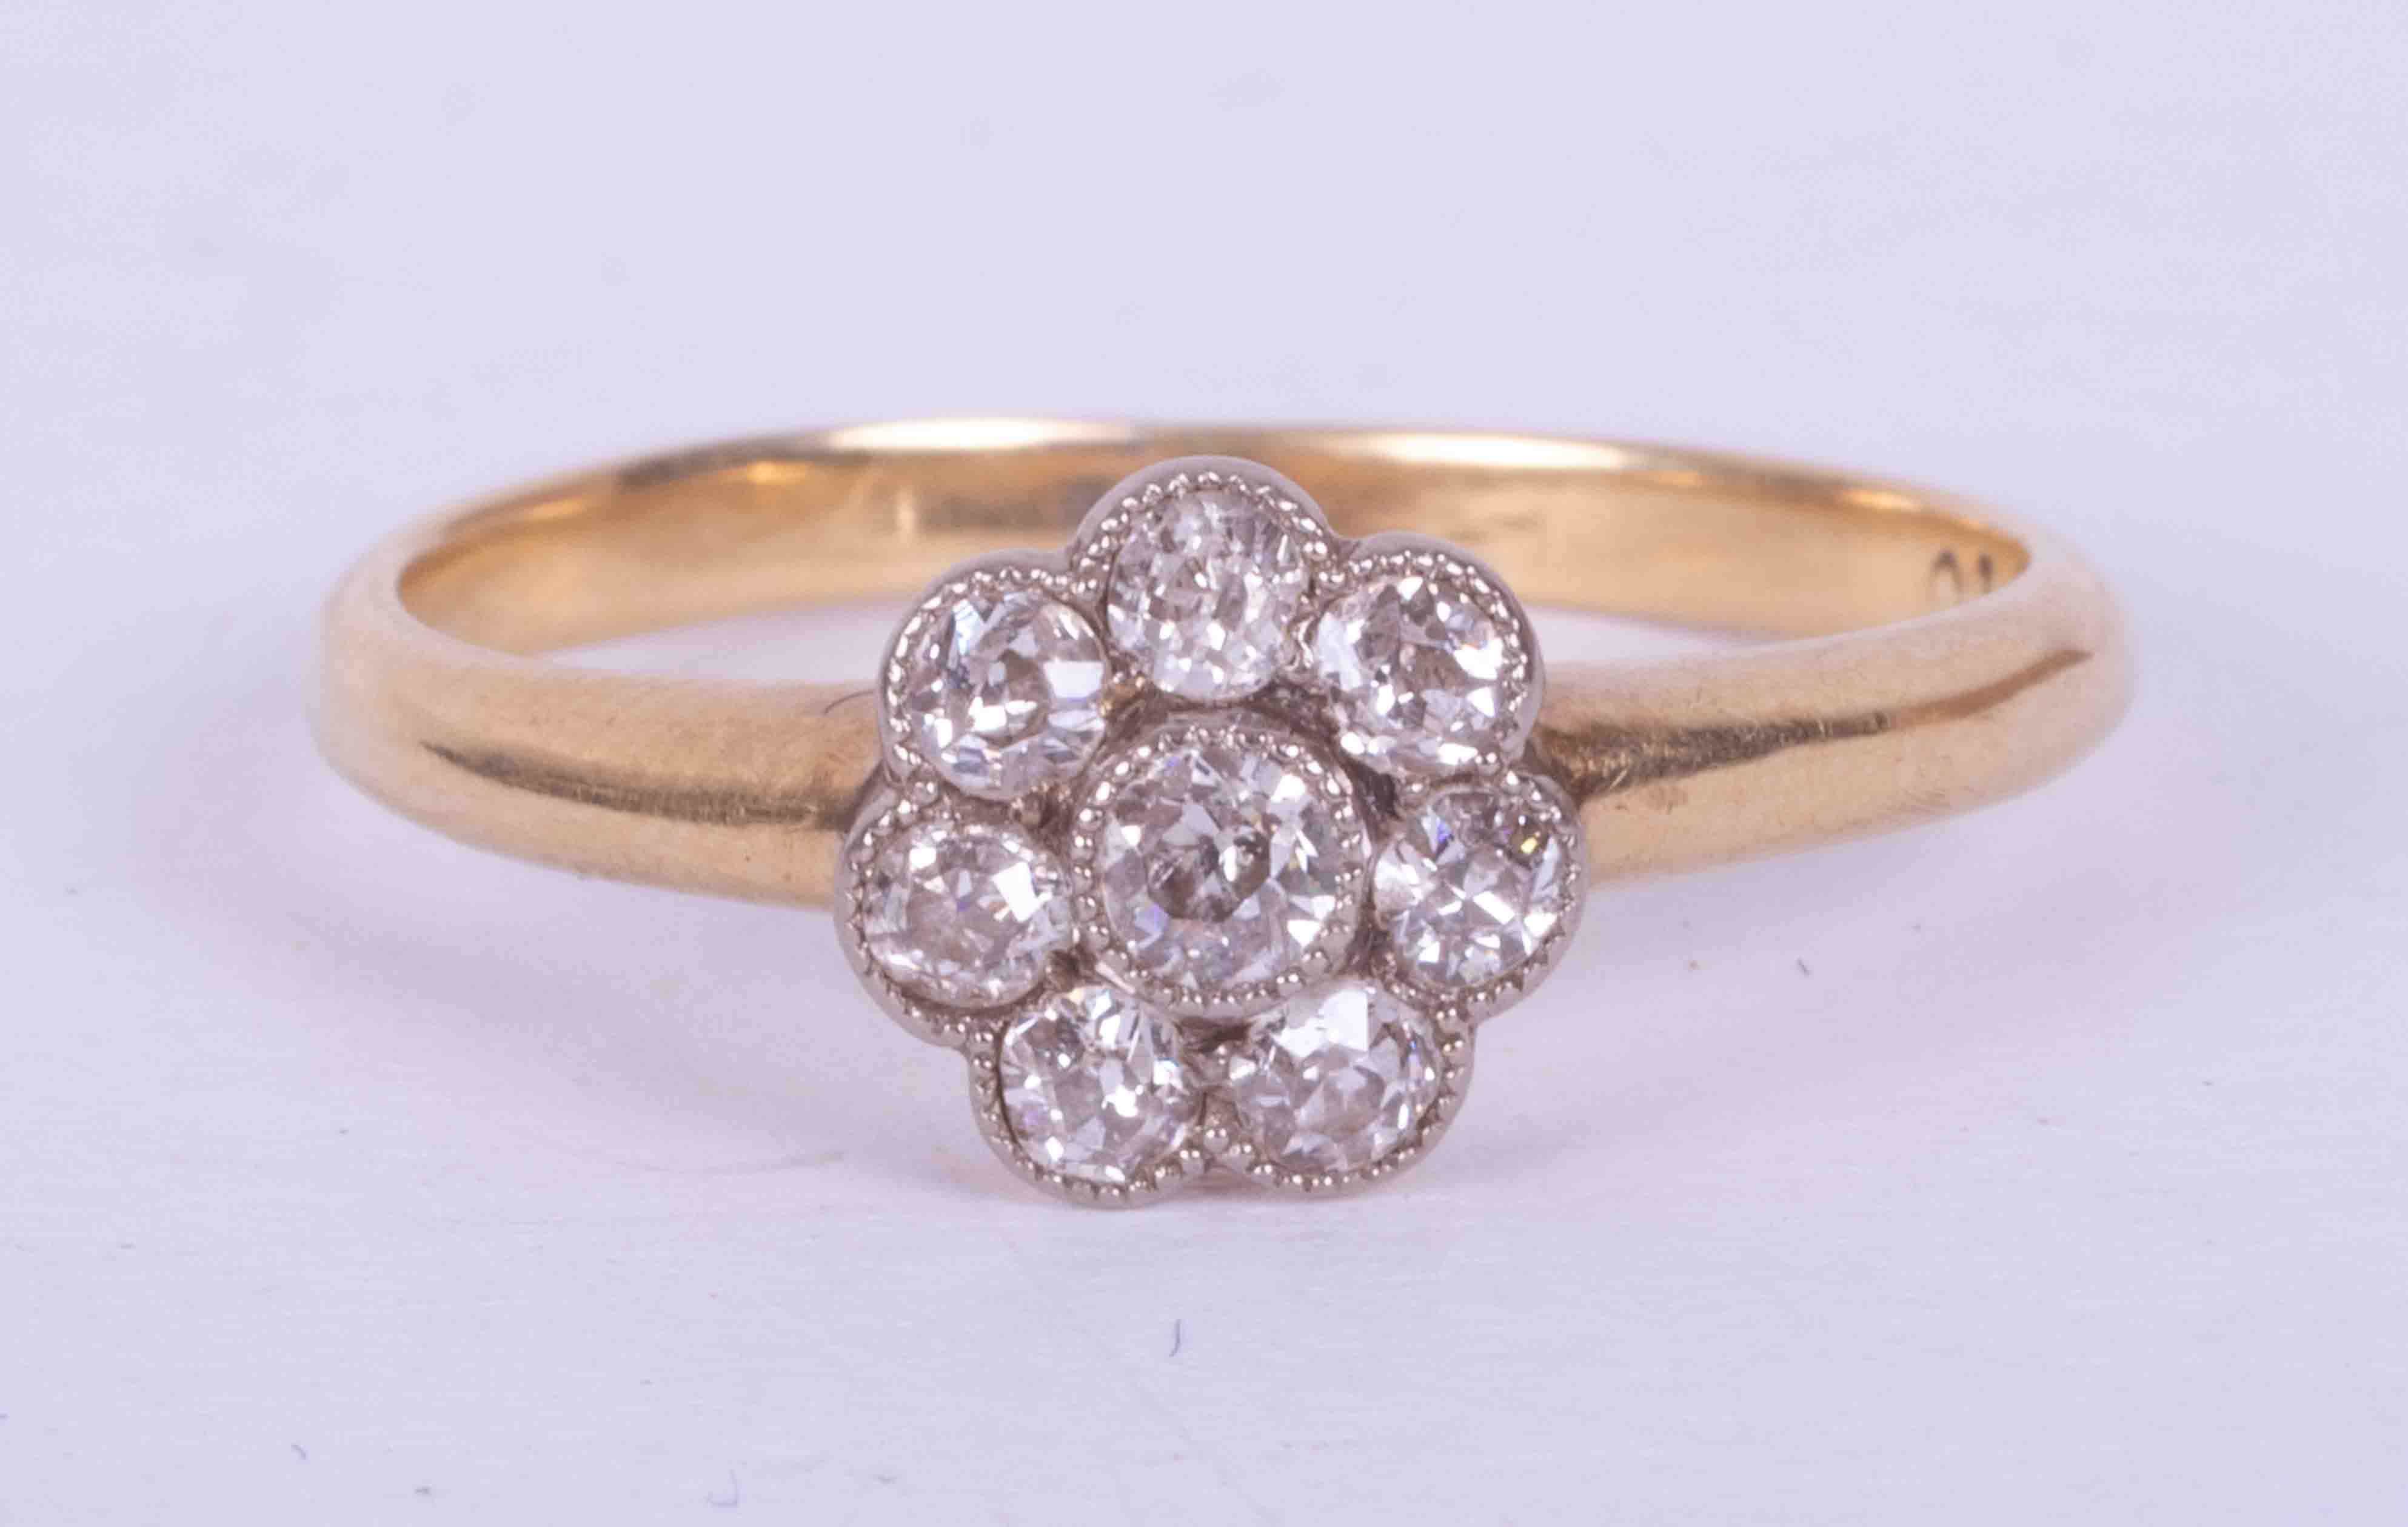 An antique 18ct yellow gold flower cluster ring set approx. 0.15 carats total weight of round cut